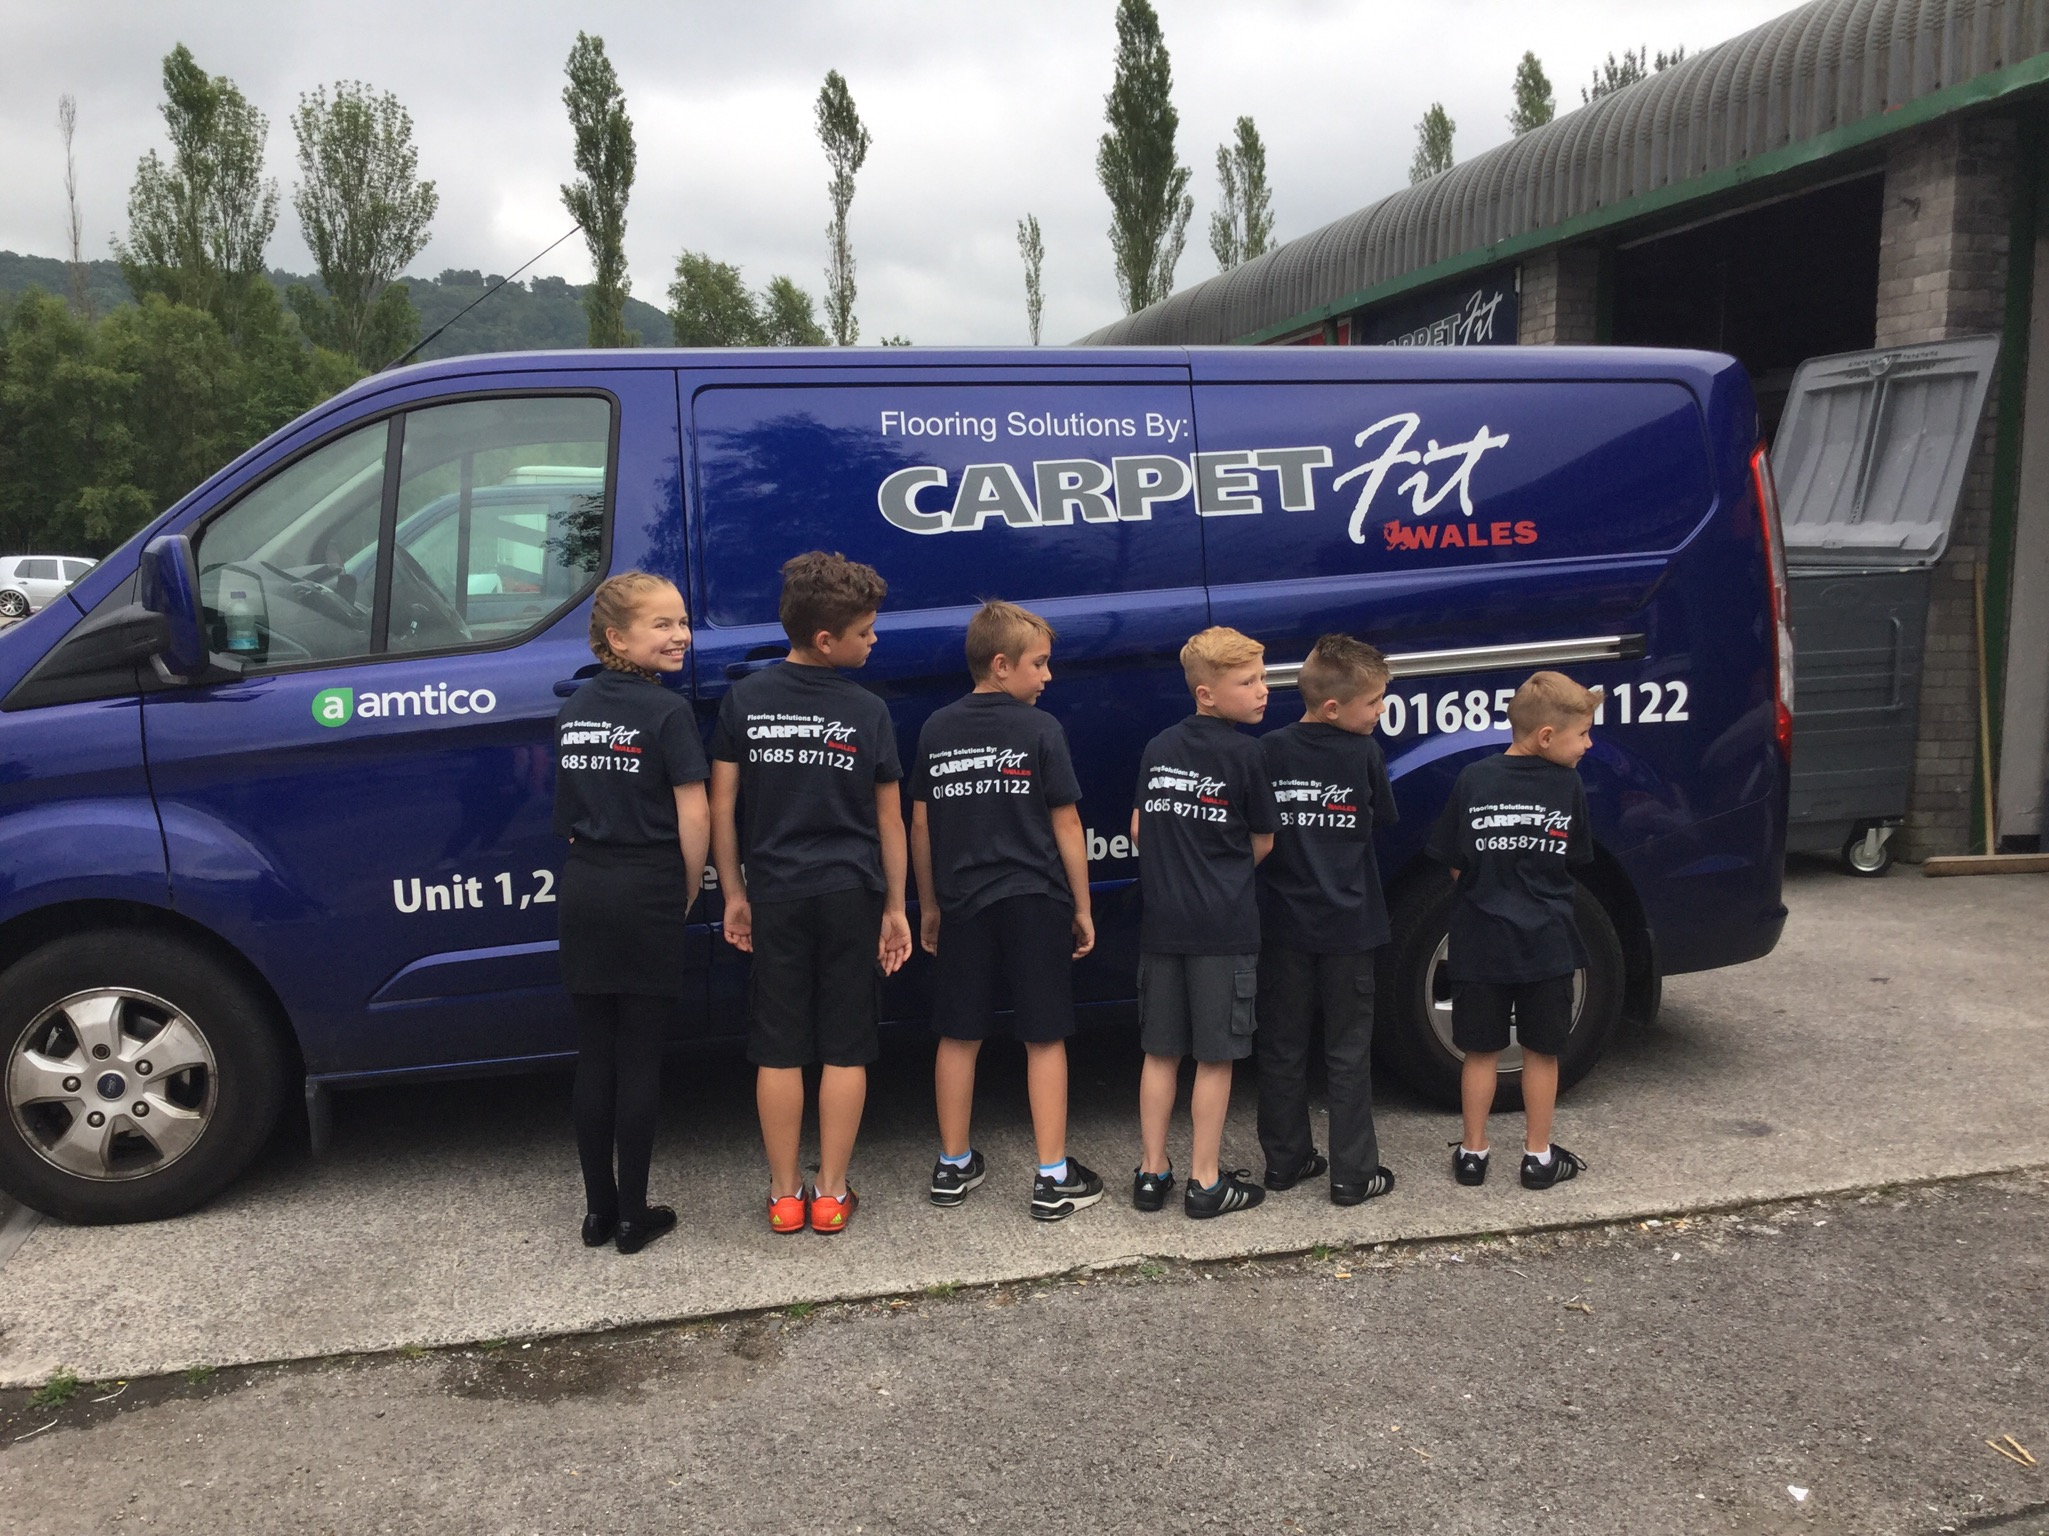 Carpet-Fit-Wales-Kids-Aberdare-South-Wales-Flooring-Carpets-LVT-Vinyl-Cleaning-Professional-Samples-T-Shirt-FREE-HALF-TERM